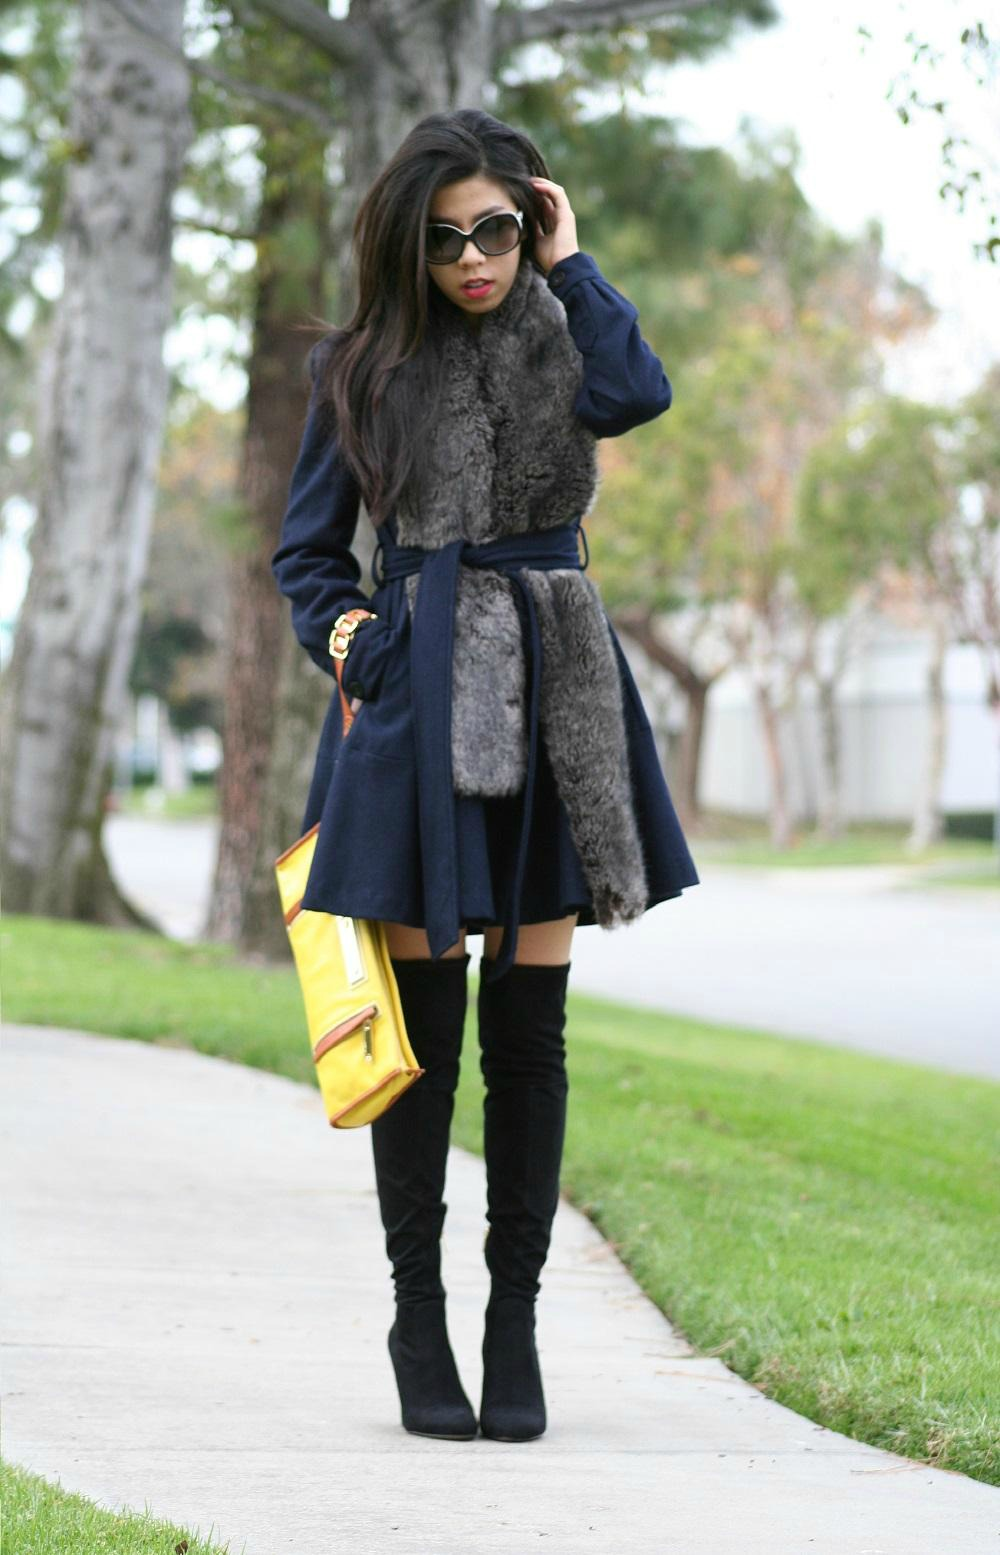 Forever 21 Double Breasted Belted Flare Coat with Suede Over the Knee Boots